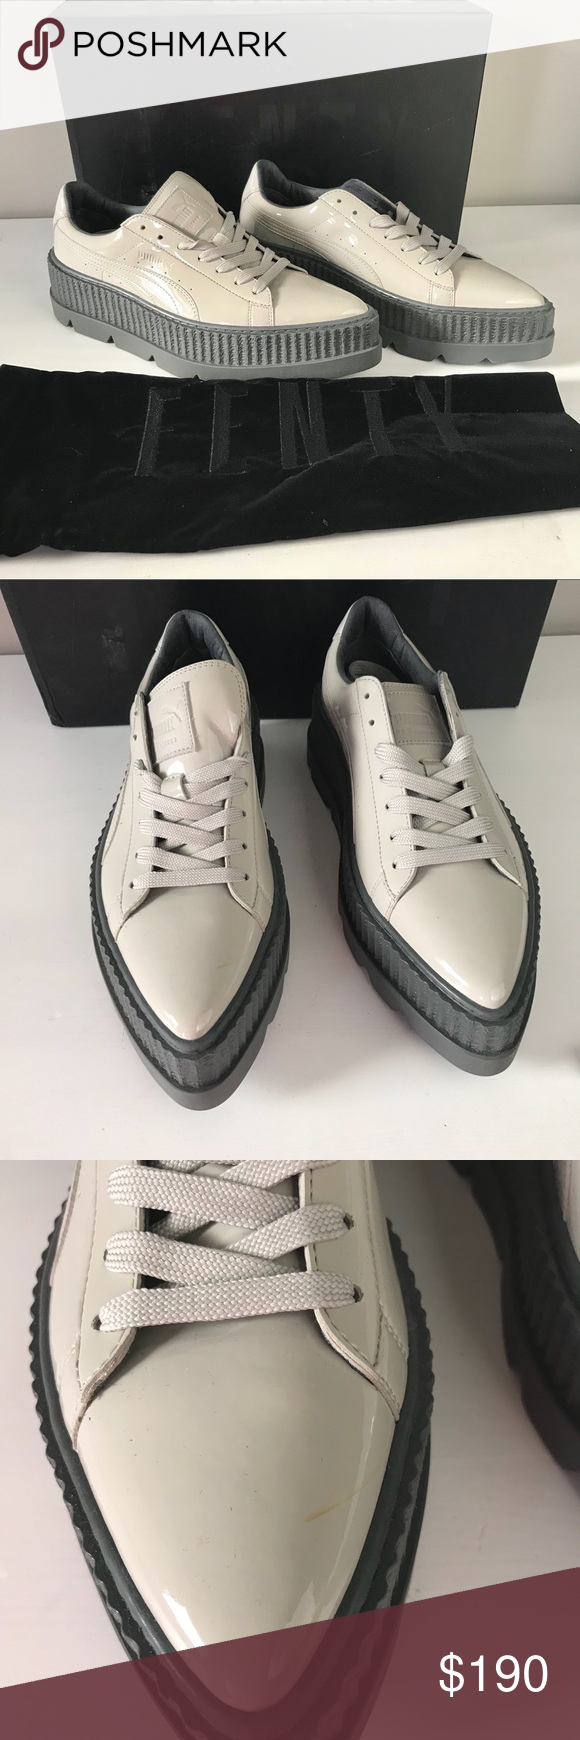 826dfbcd645f Puma NEW Fenty pointy creeper patent Rihanna gray PUMA Fenty x Rihana pointy  creeper platform sneaker in dove glacier gray 366270 02 Modern Pointy  Creeper ...